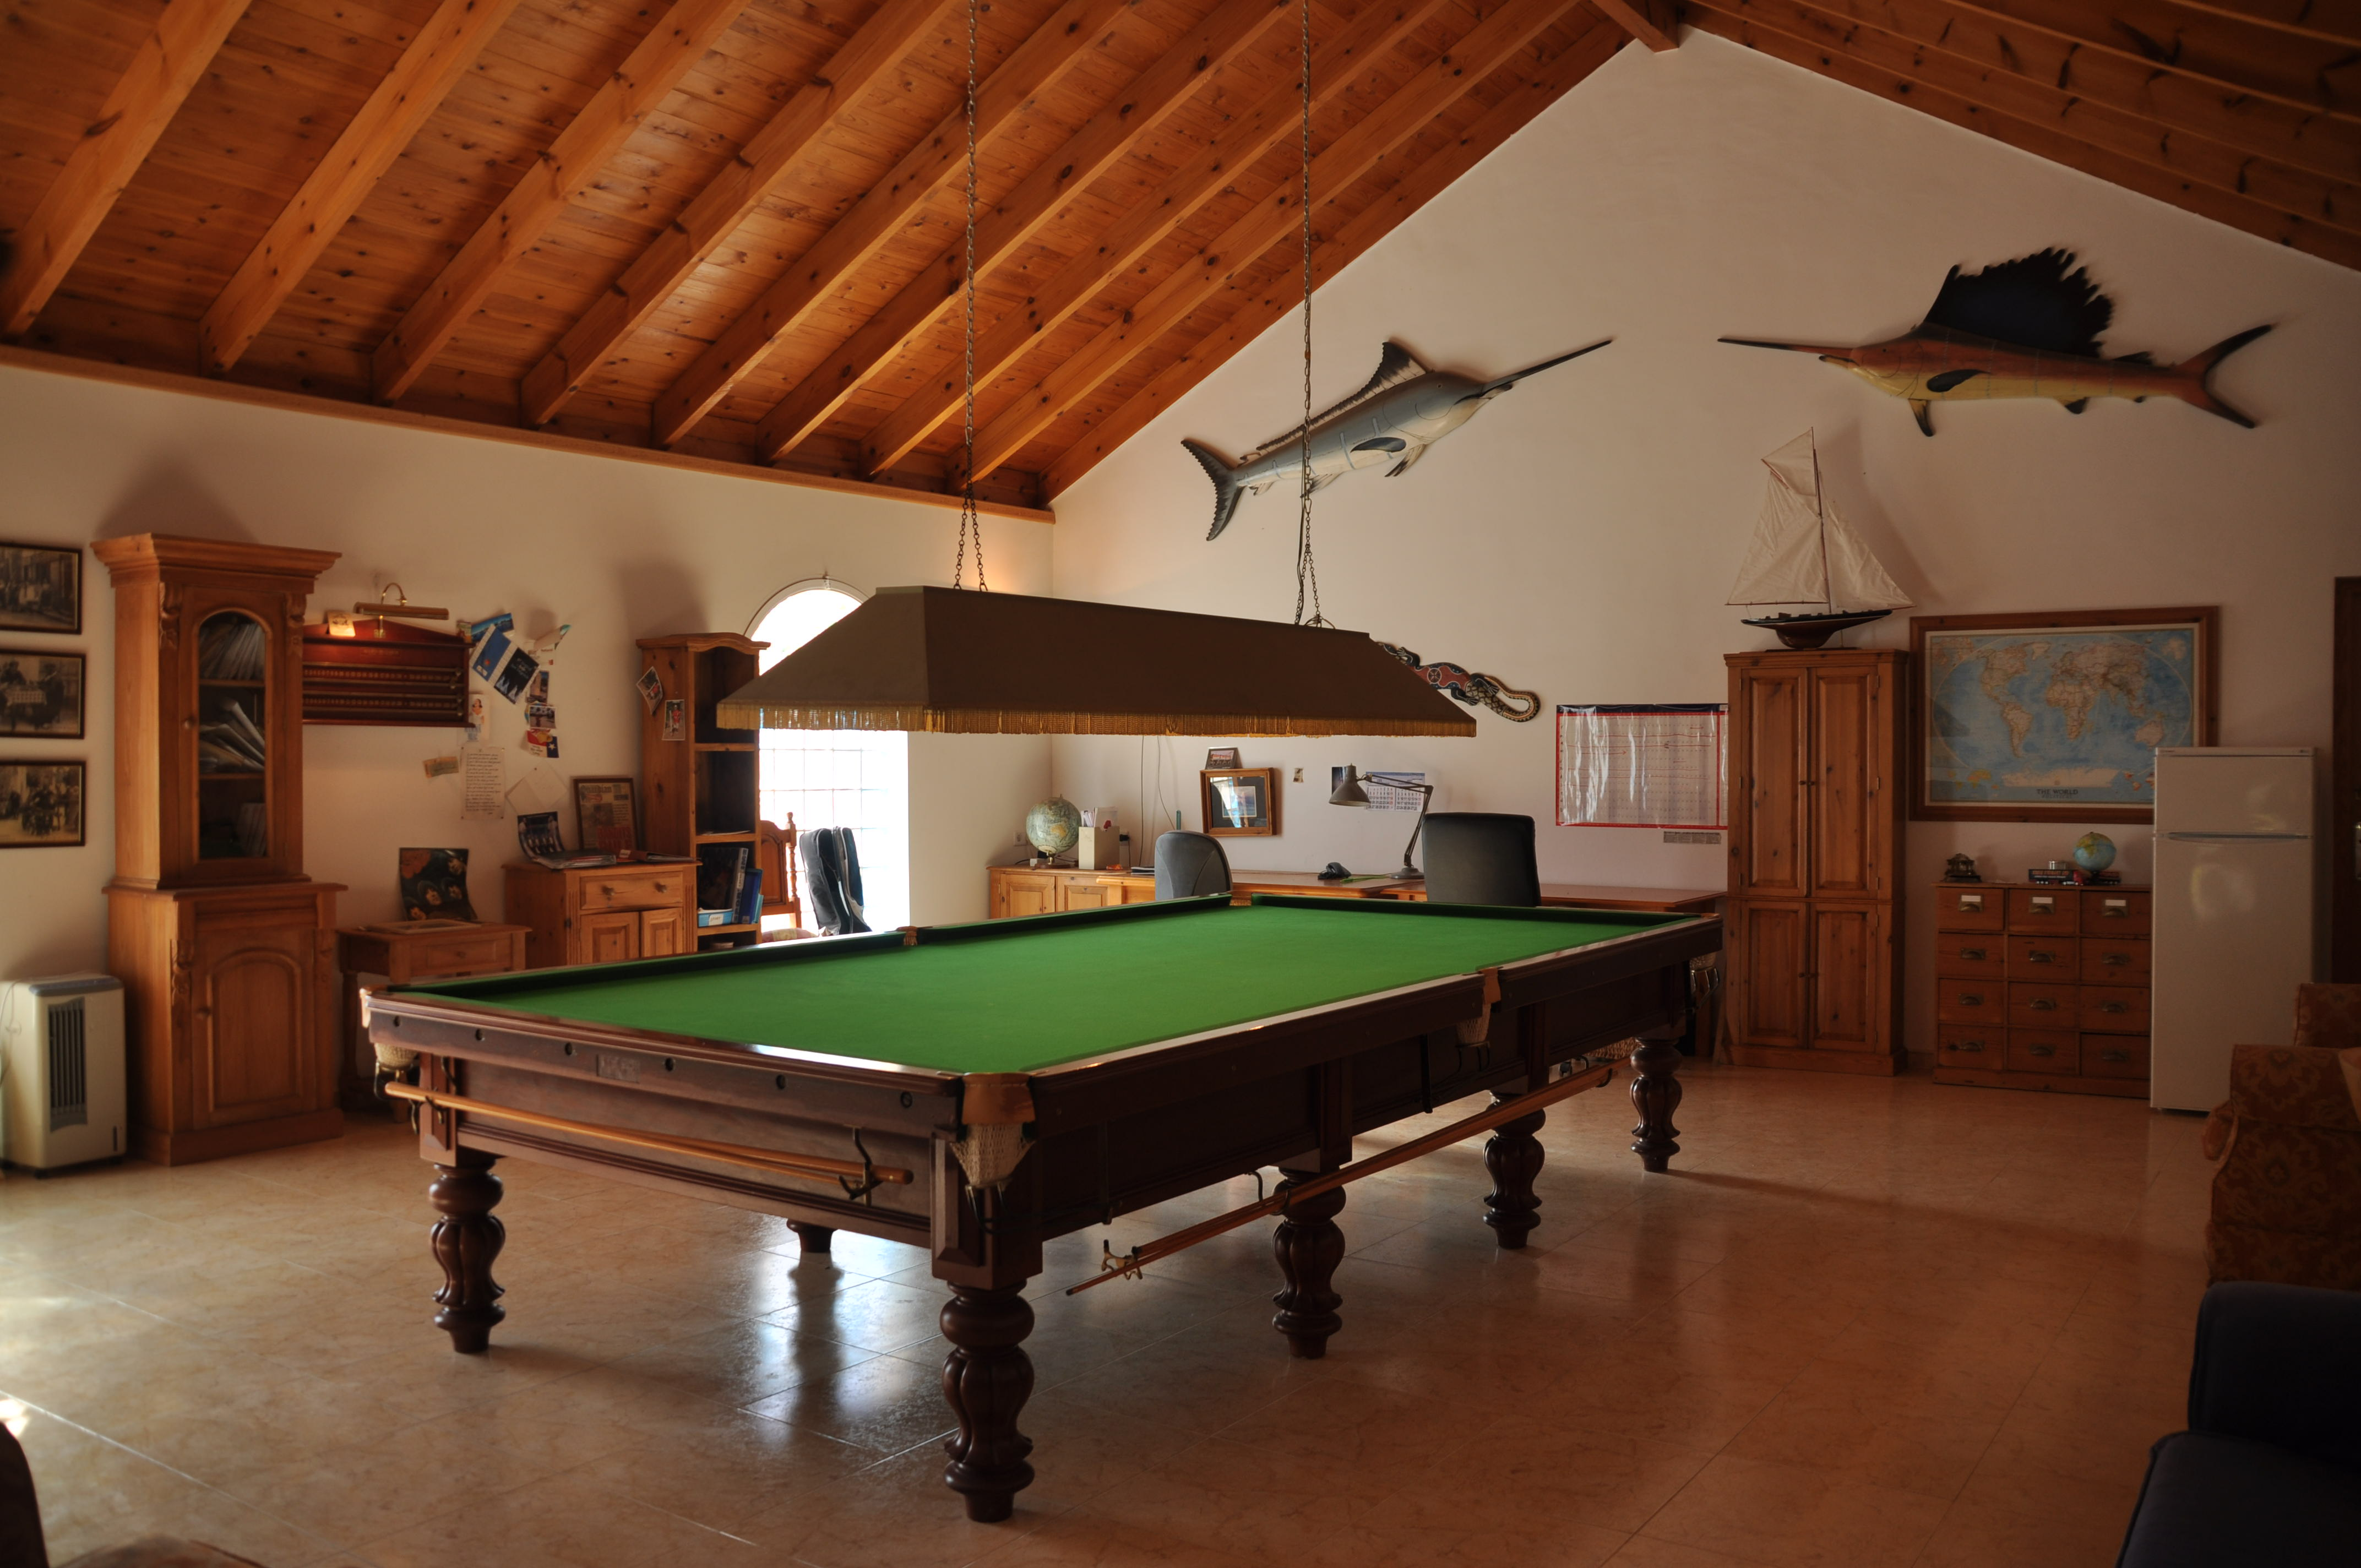 Snooker Hall Traditional Spanish Farmhouse Property For